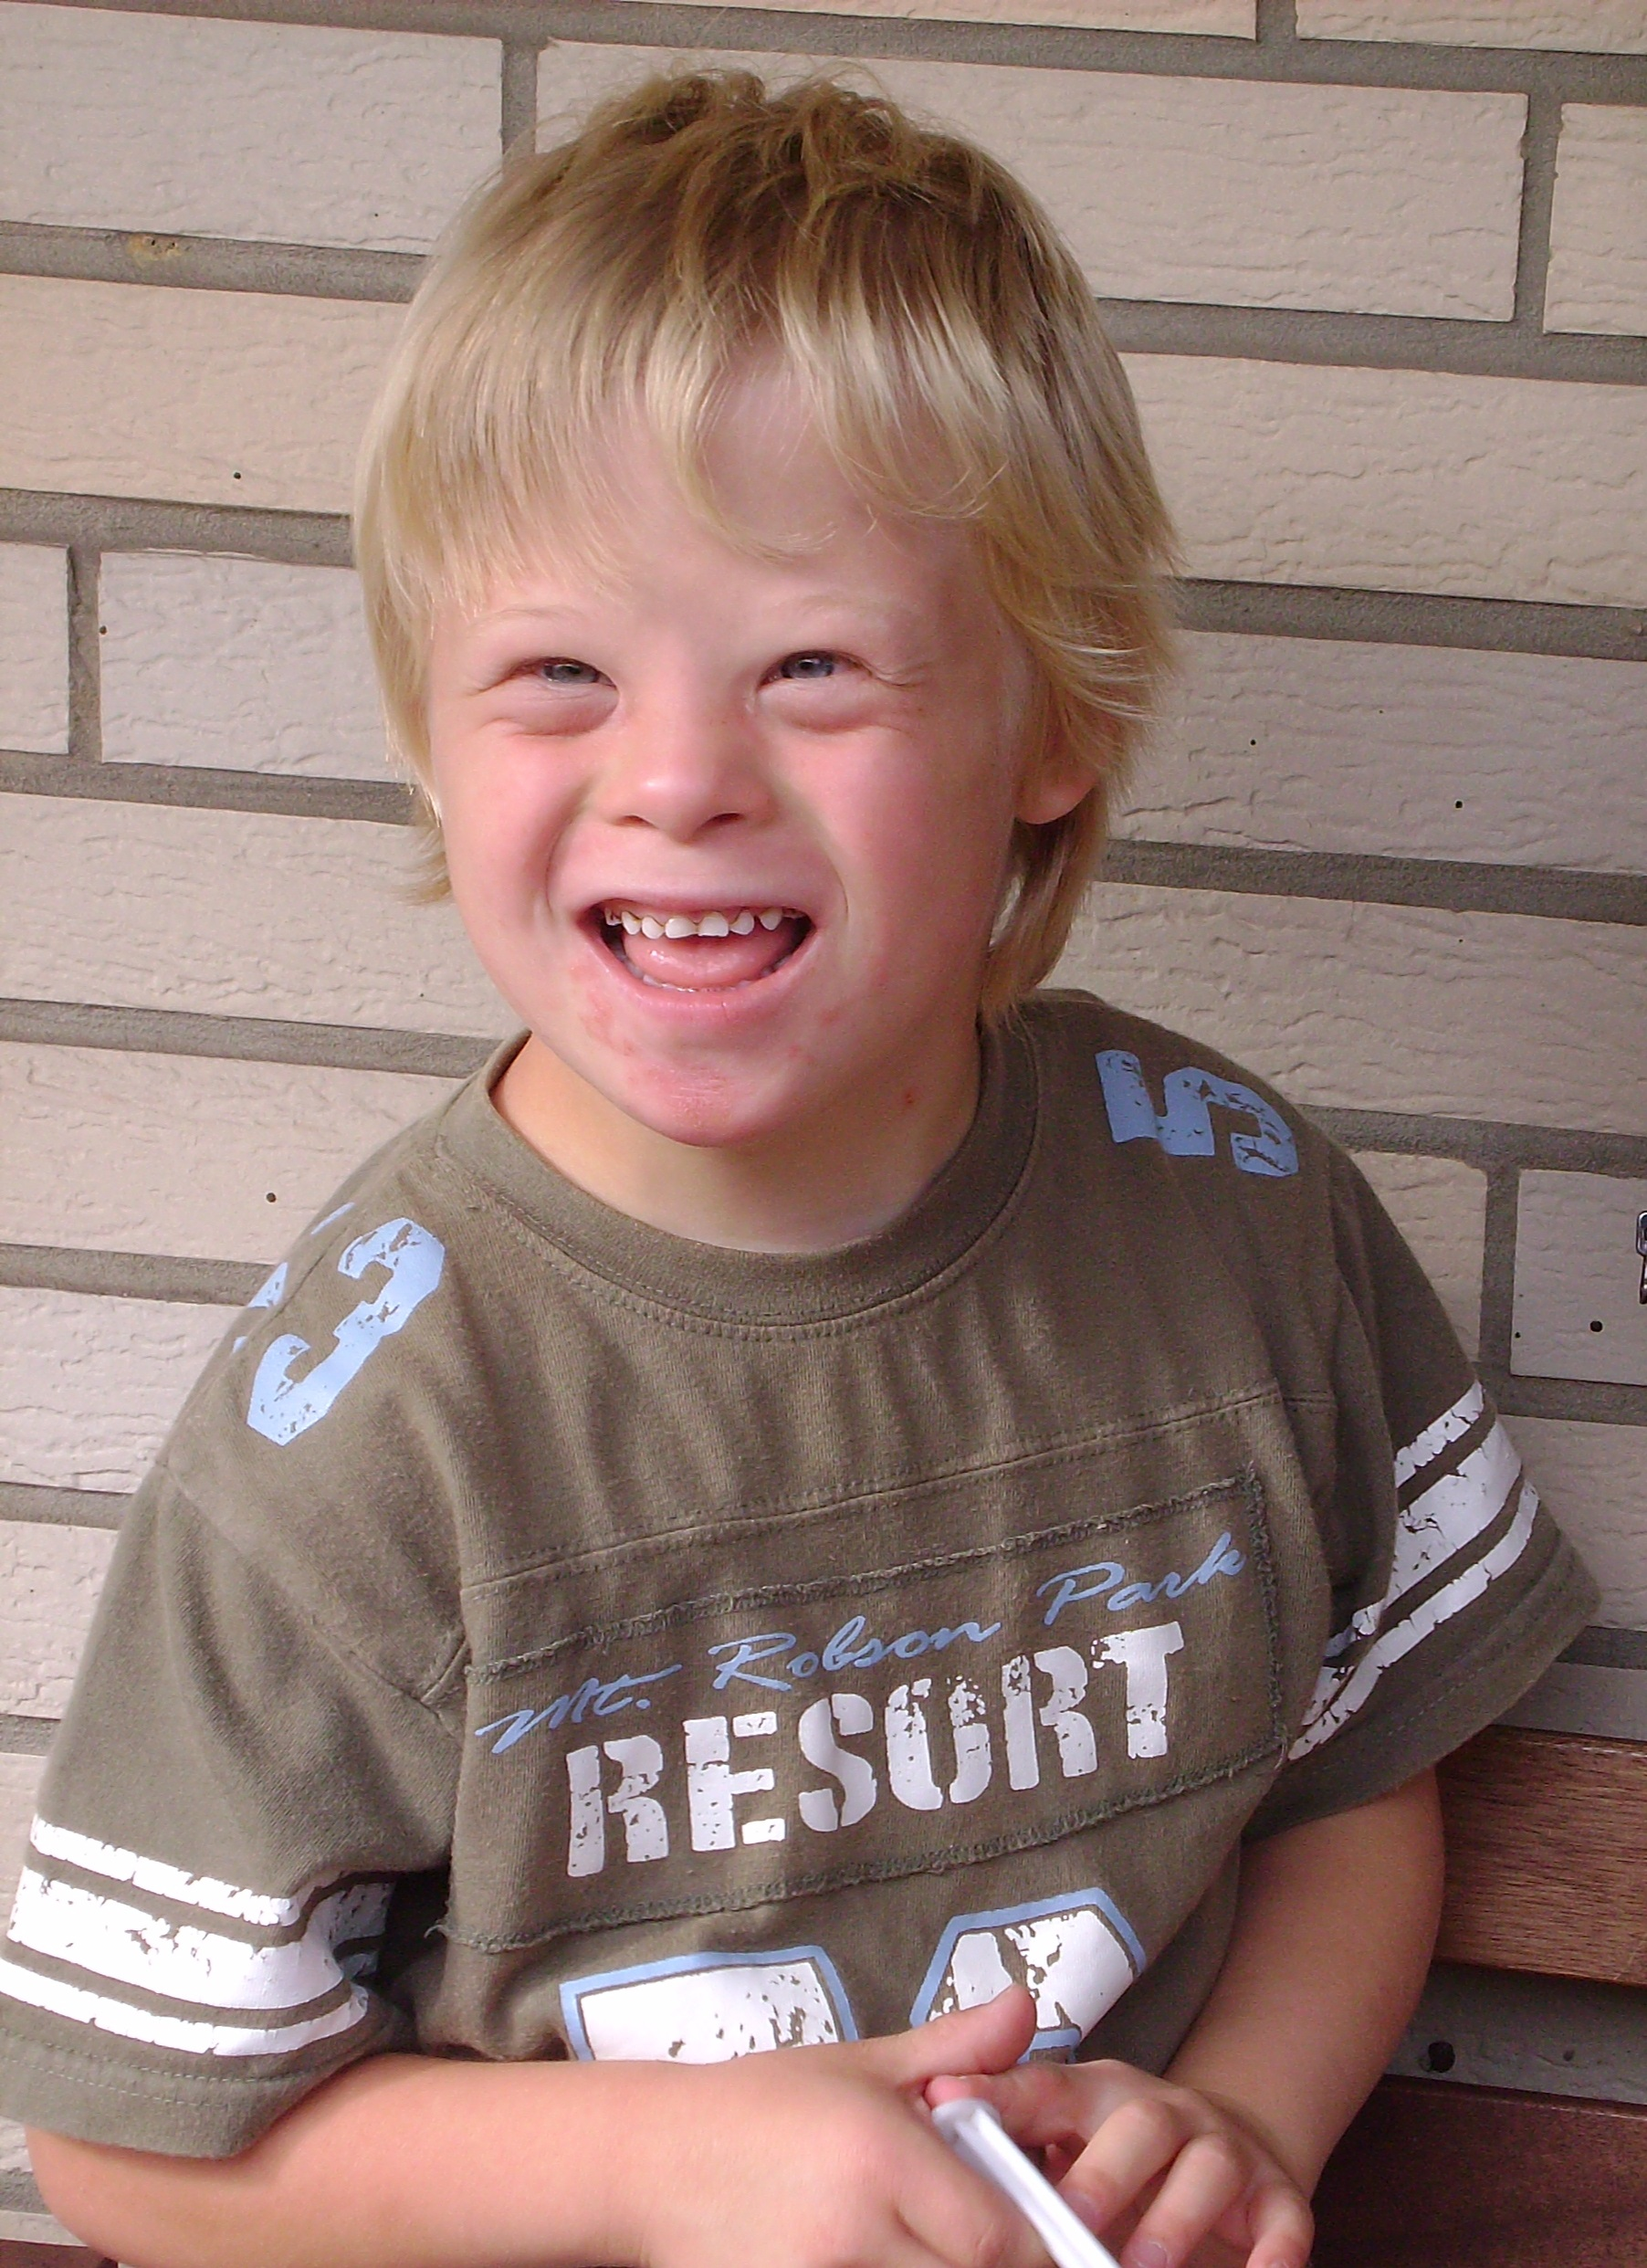 down syndrome - simple english wikipedia, the free encyclopedia